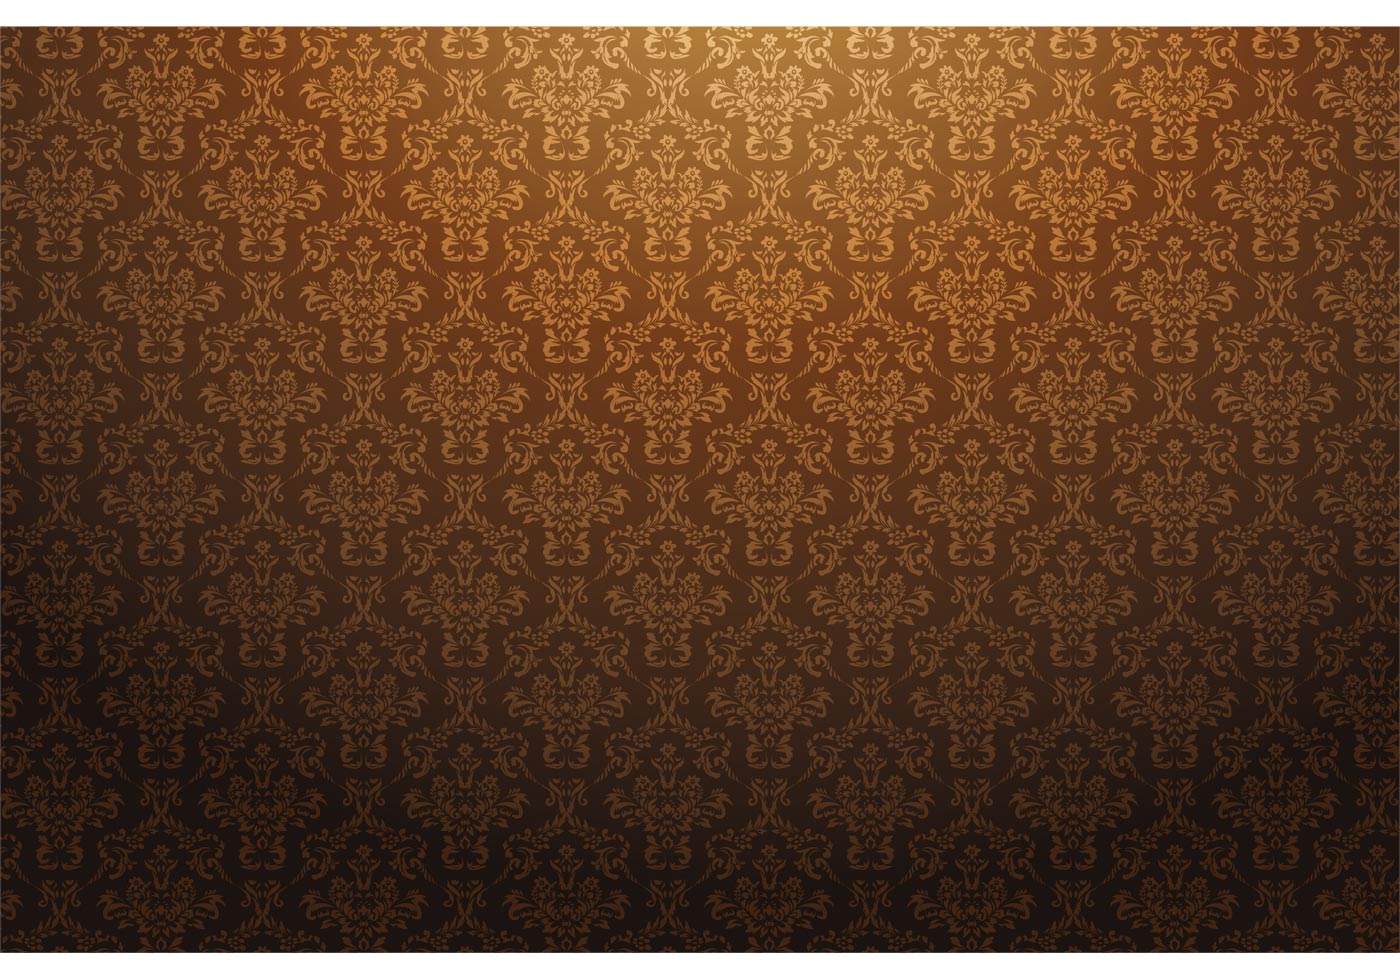 Fall Dog Wallpaper Baroque Seamless Pattern Download Free Vector Art Stock